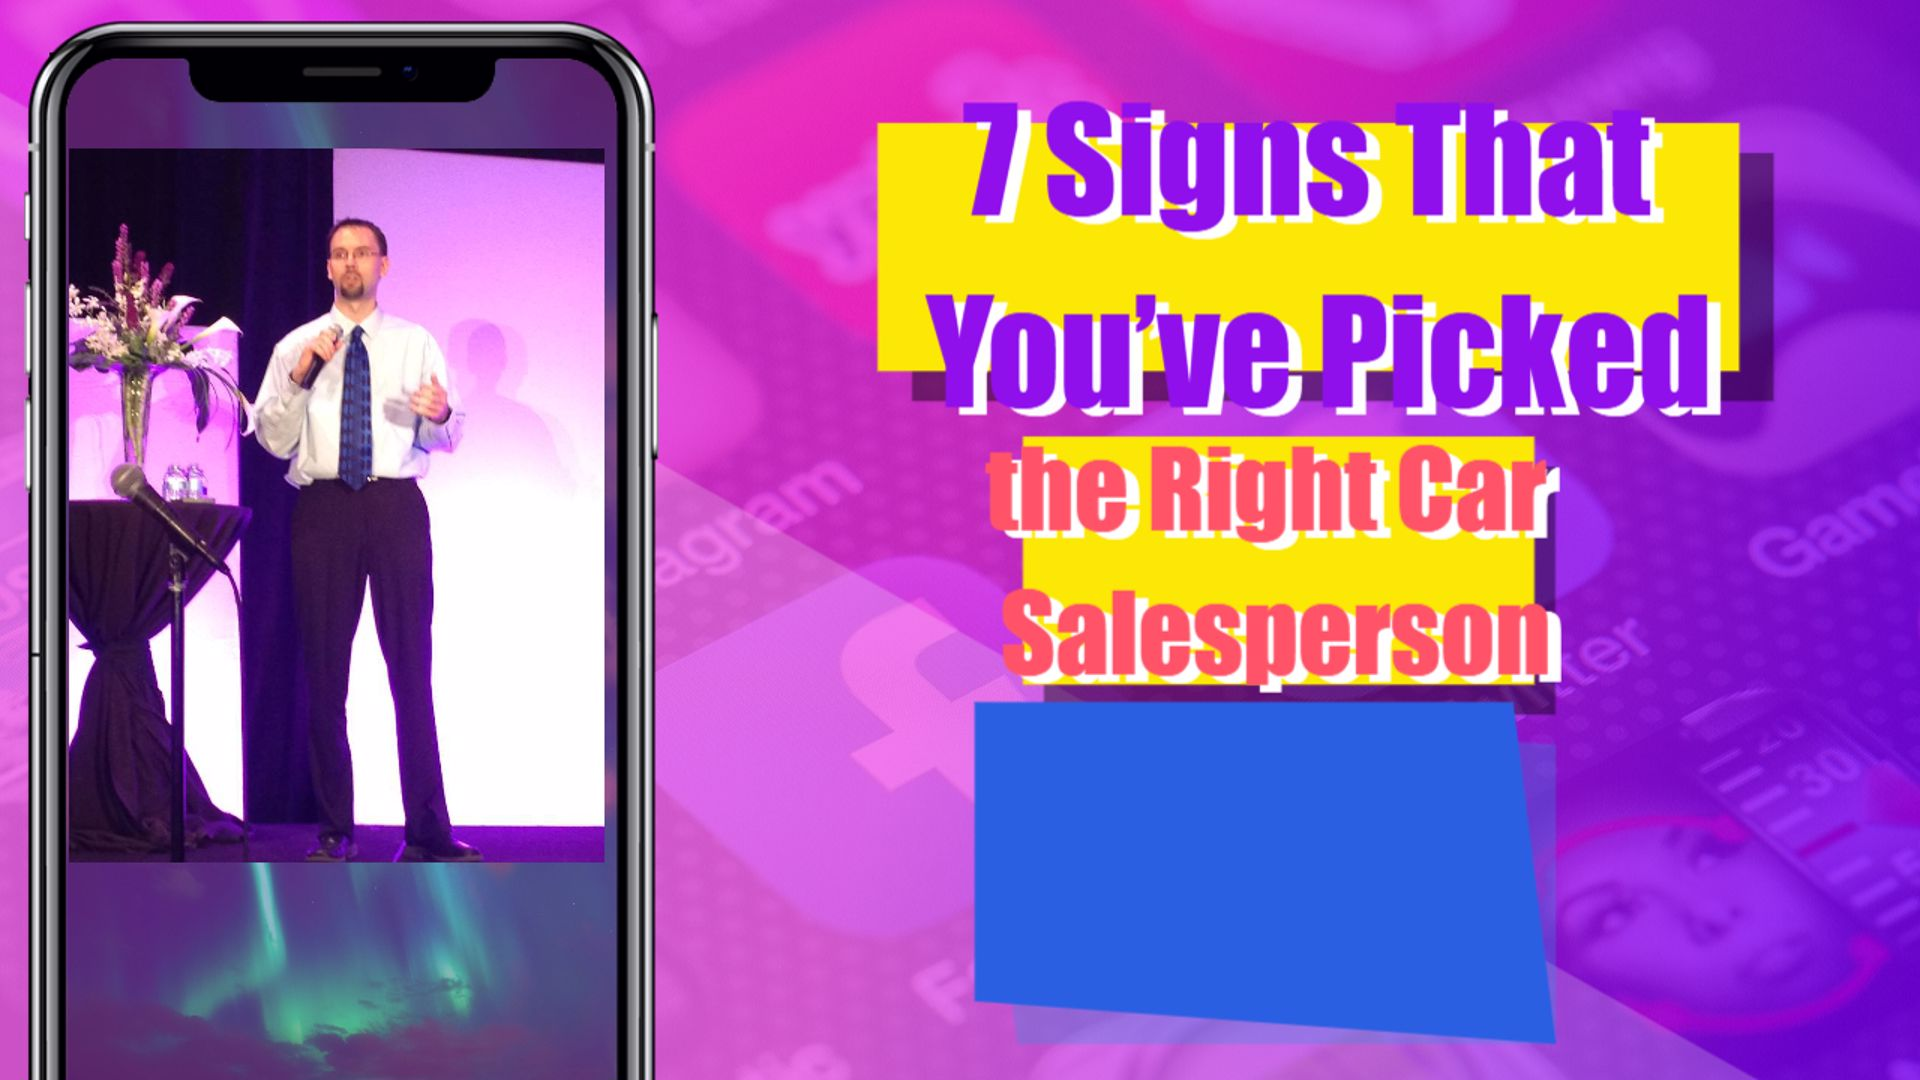 7 Signs That You've Picked the Right Car Salesperson